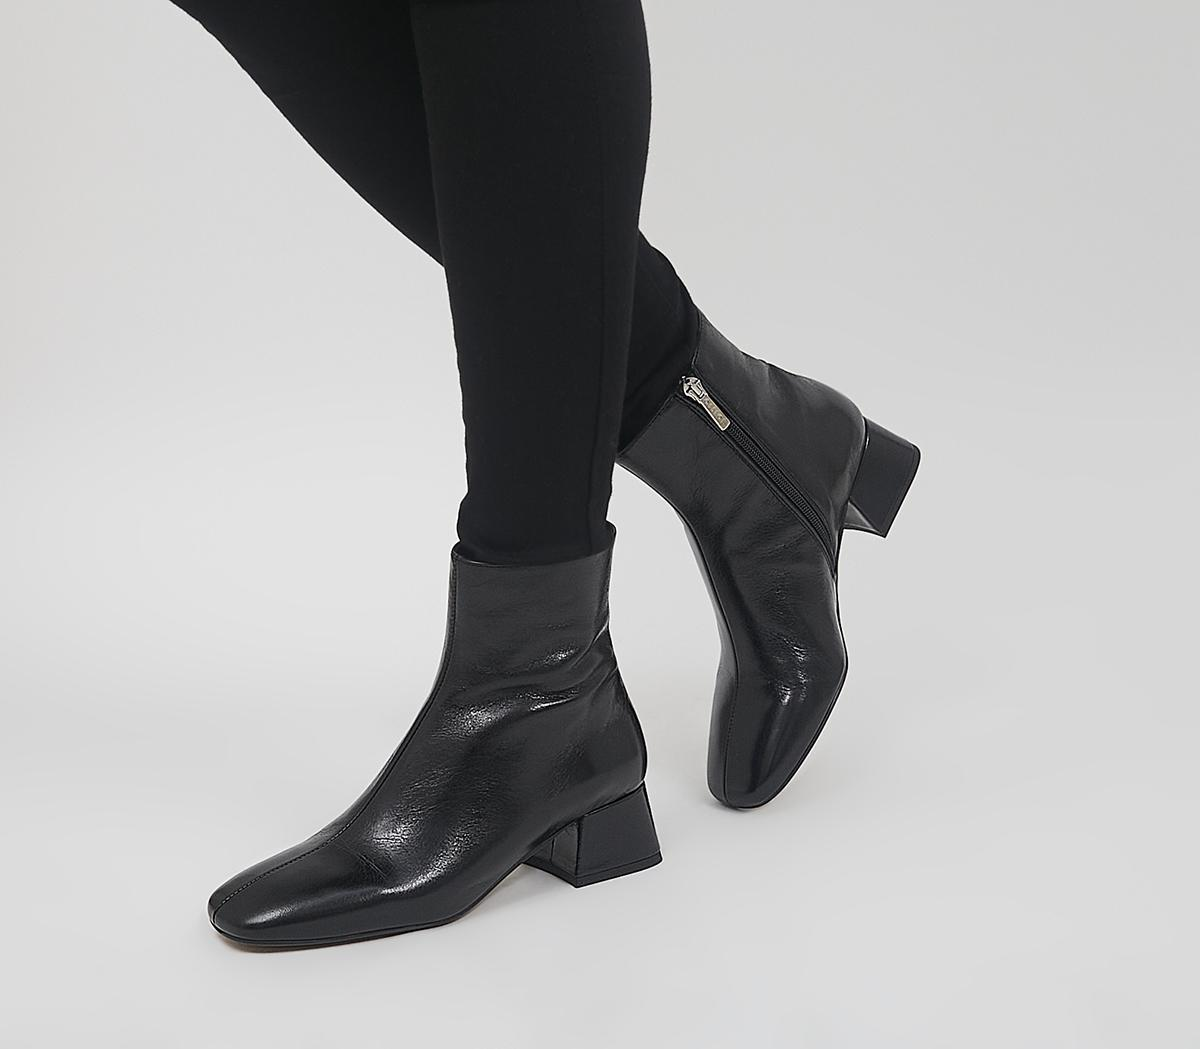 Approval Low Square Toe Boots